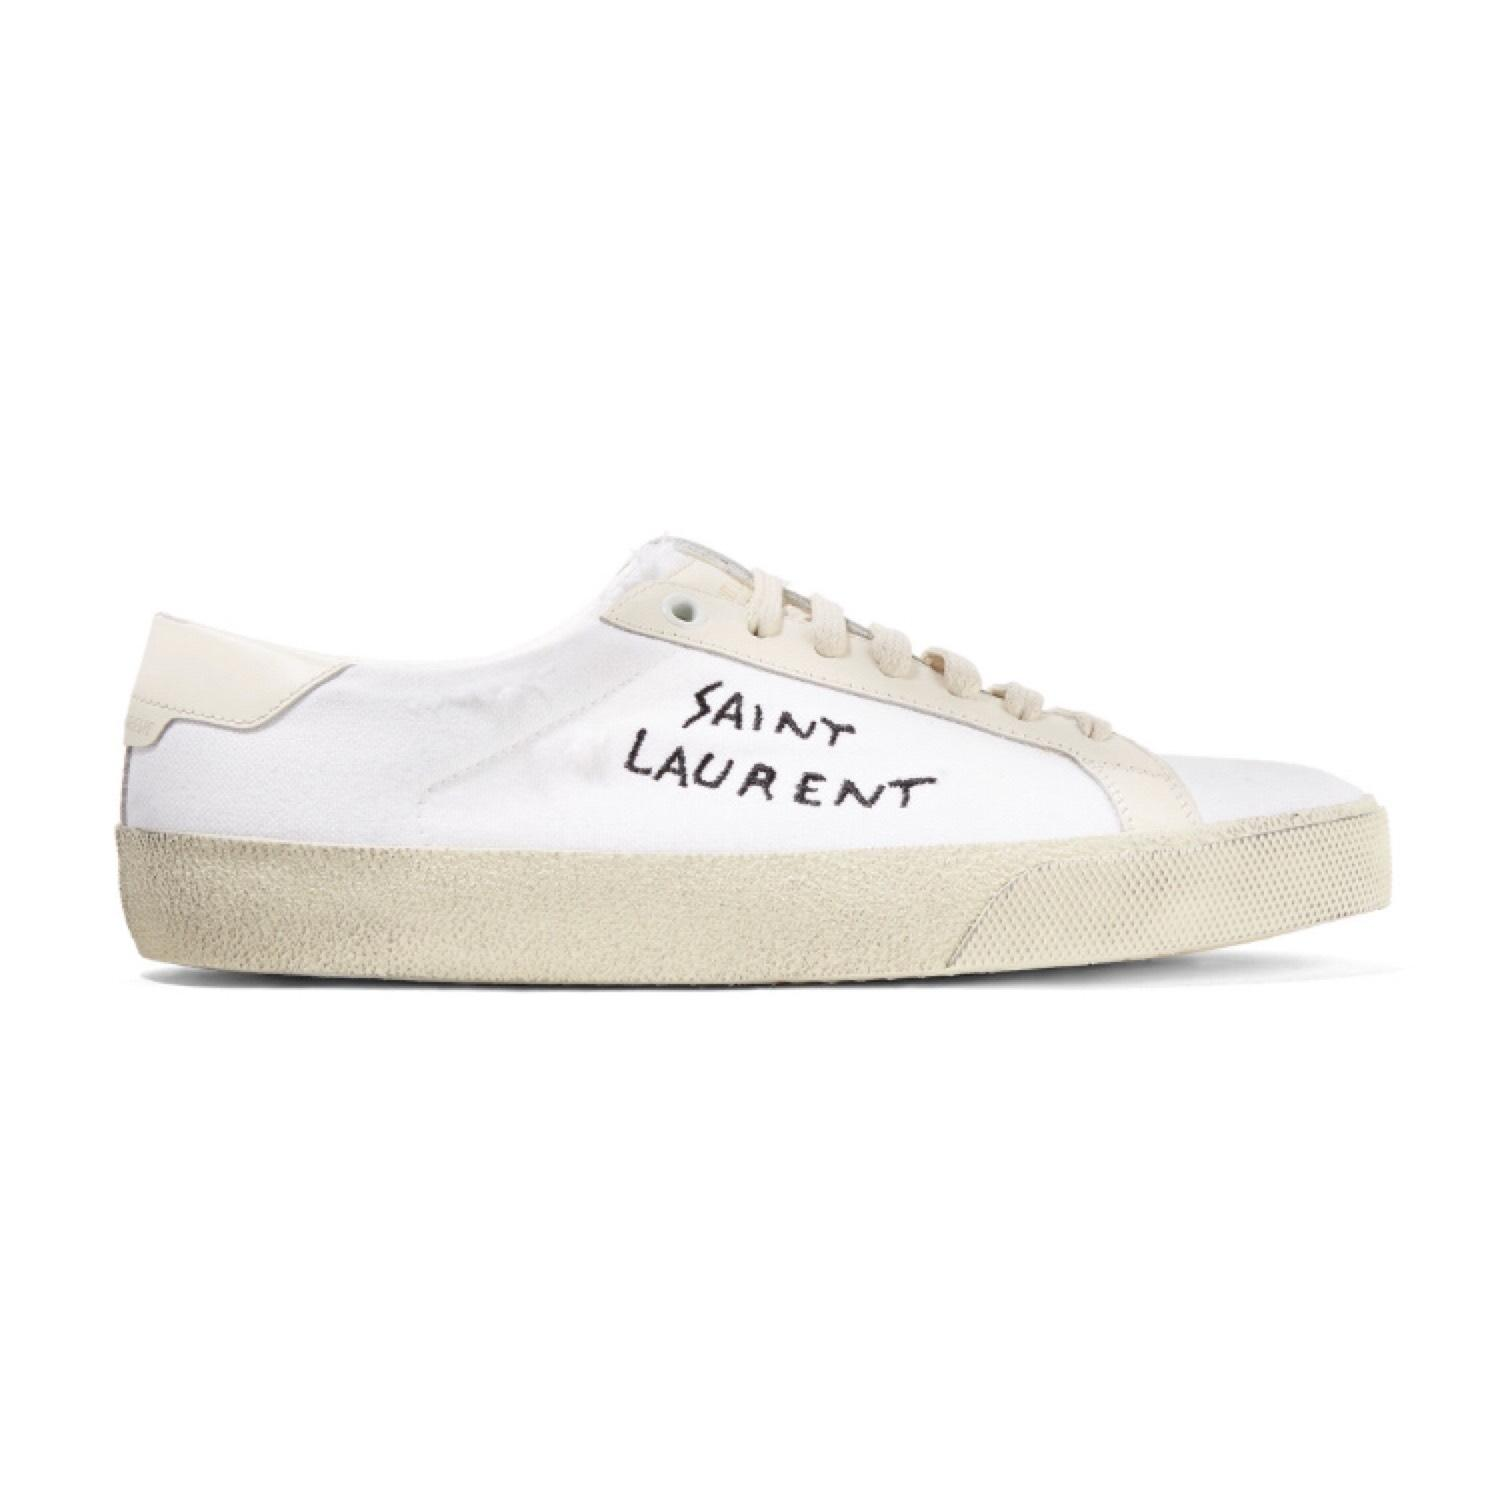 Saint Laurent Logo canvas sneakers